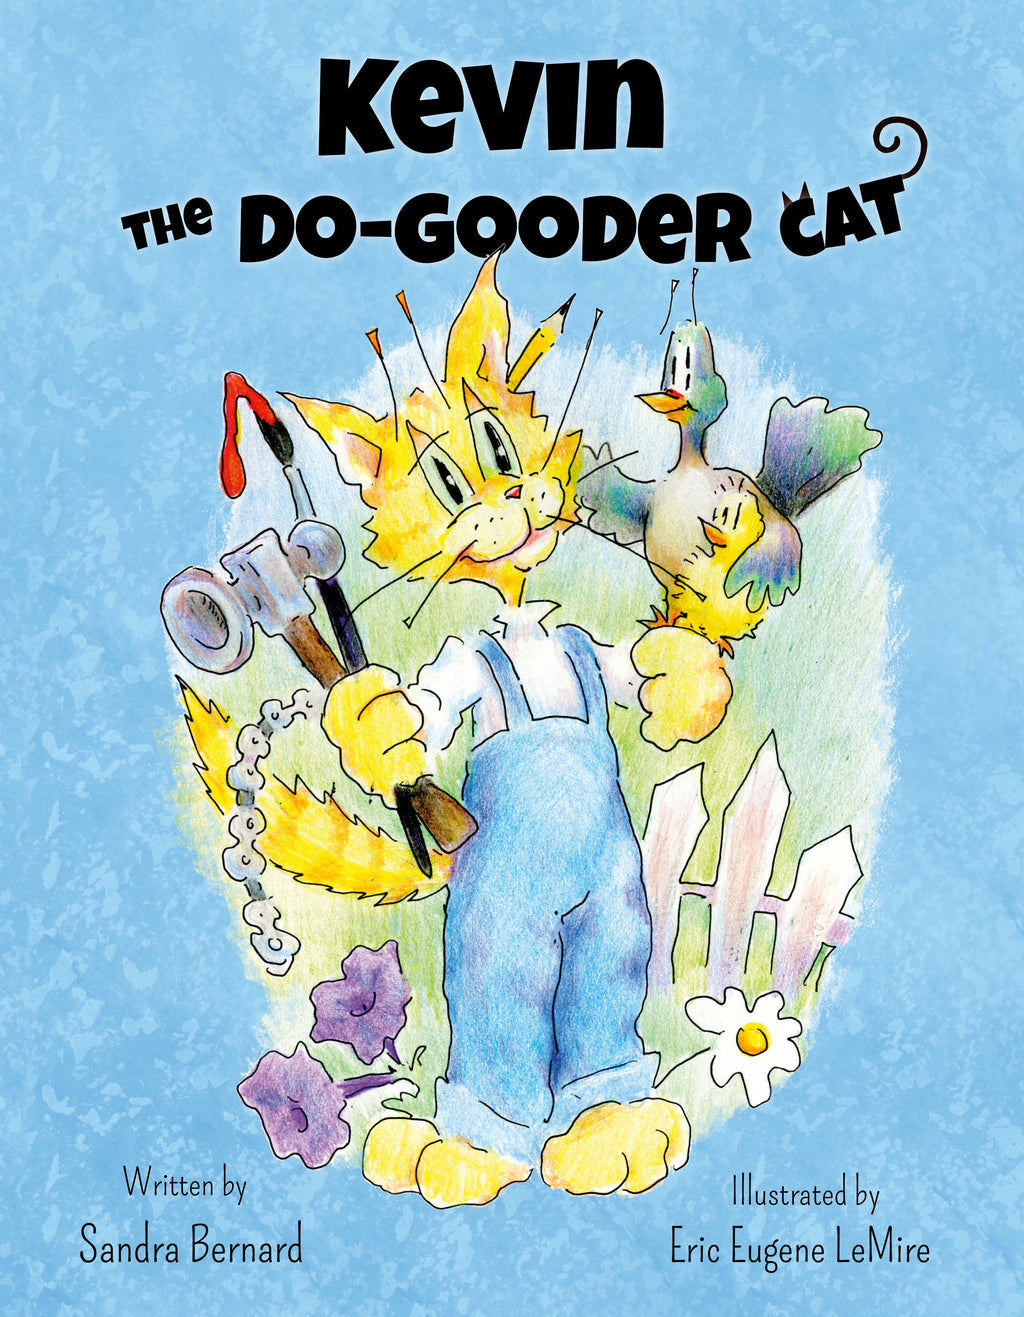 Kevin the Do-Gooder Cat